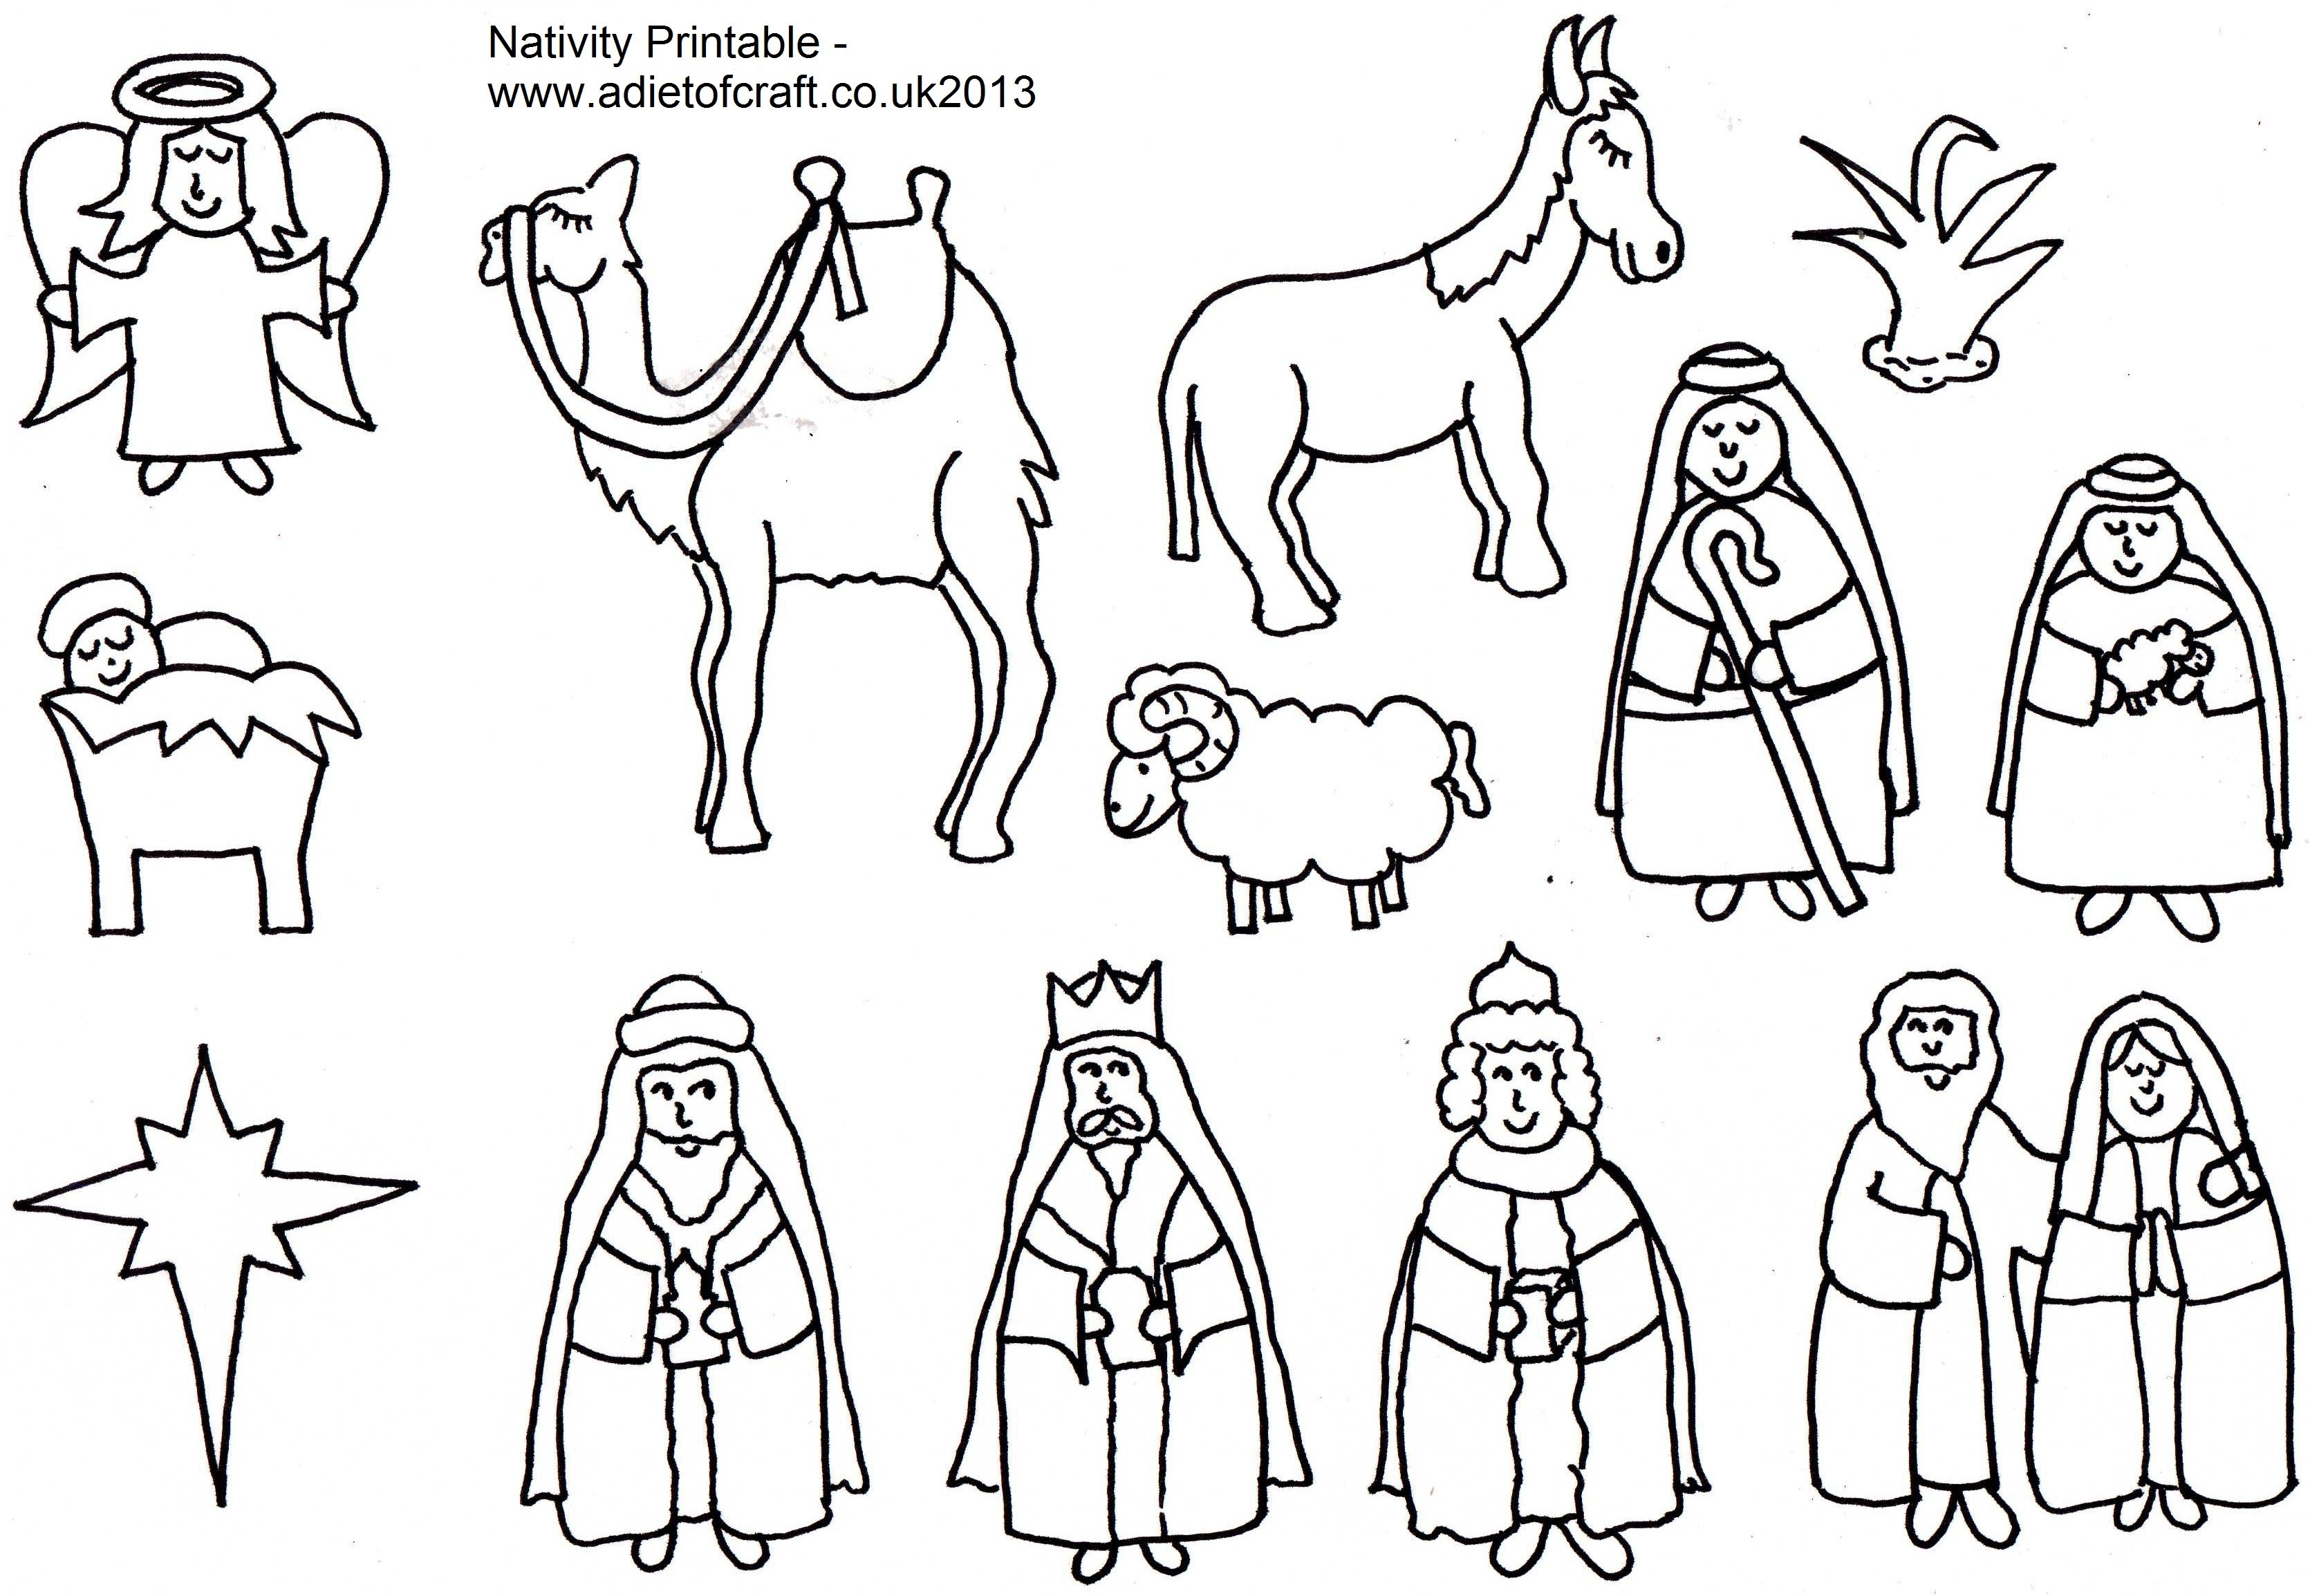 Free Nativity Coloring Pages To Print  7 Best of Nativity Story Printable Book Printable